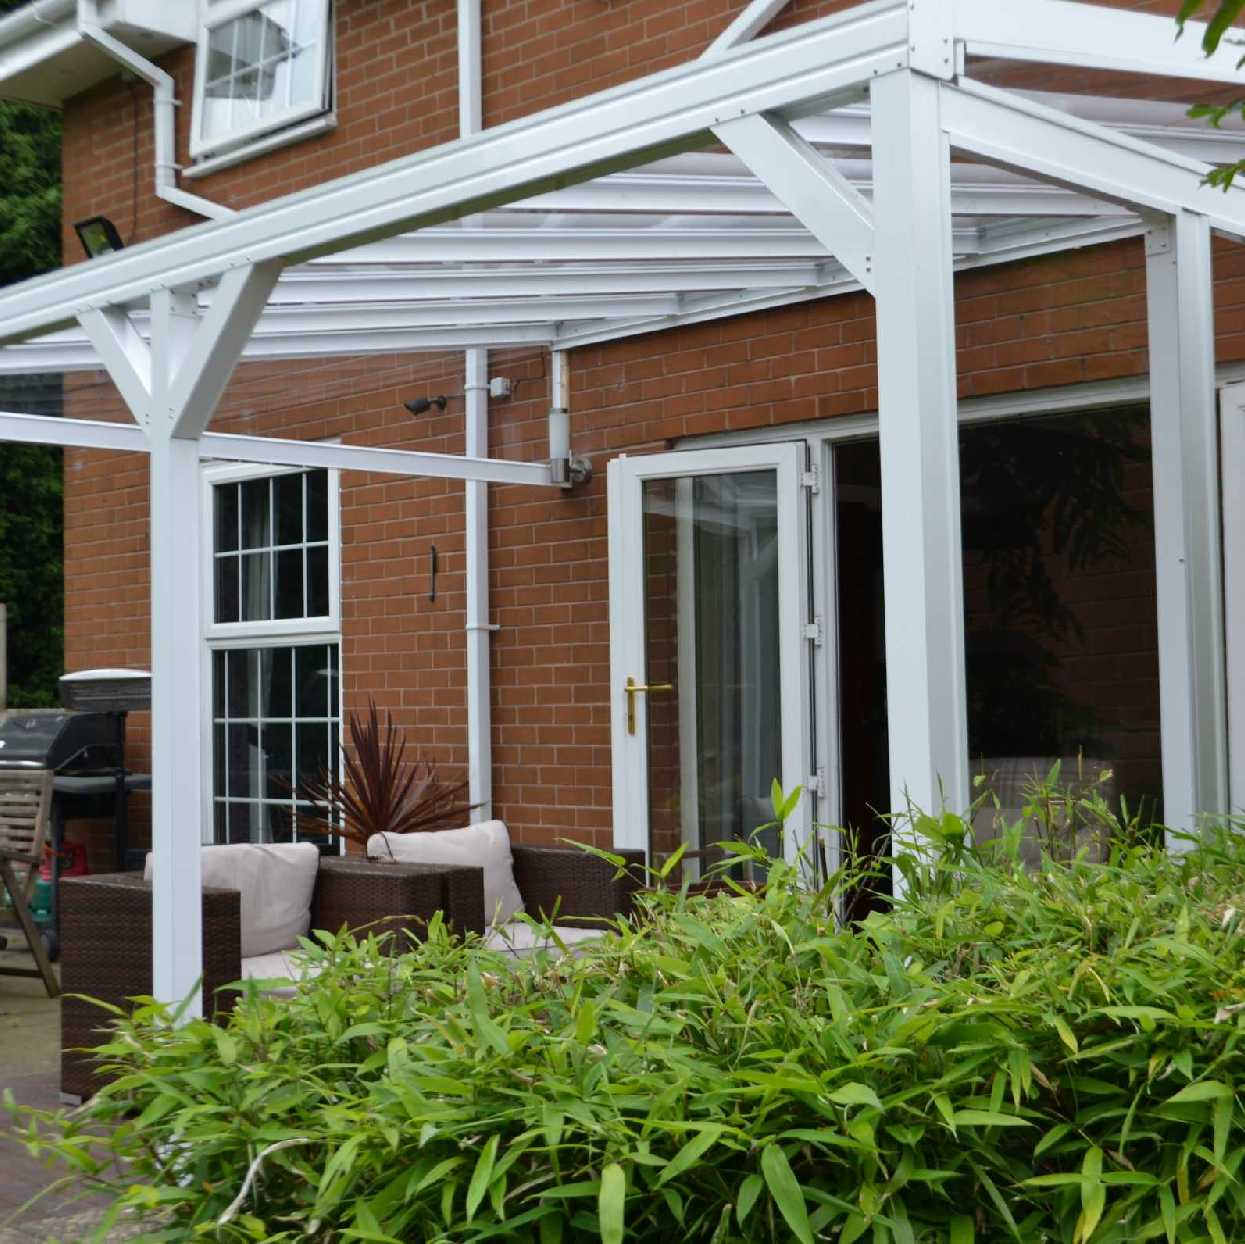 Omega Smart White Lean-To Canopy with 6mm Glass Clear Plate Polycarbonate Glazing - 4.9m (W) x 3.5m (P), (3) Supporting Posts from Omega Build